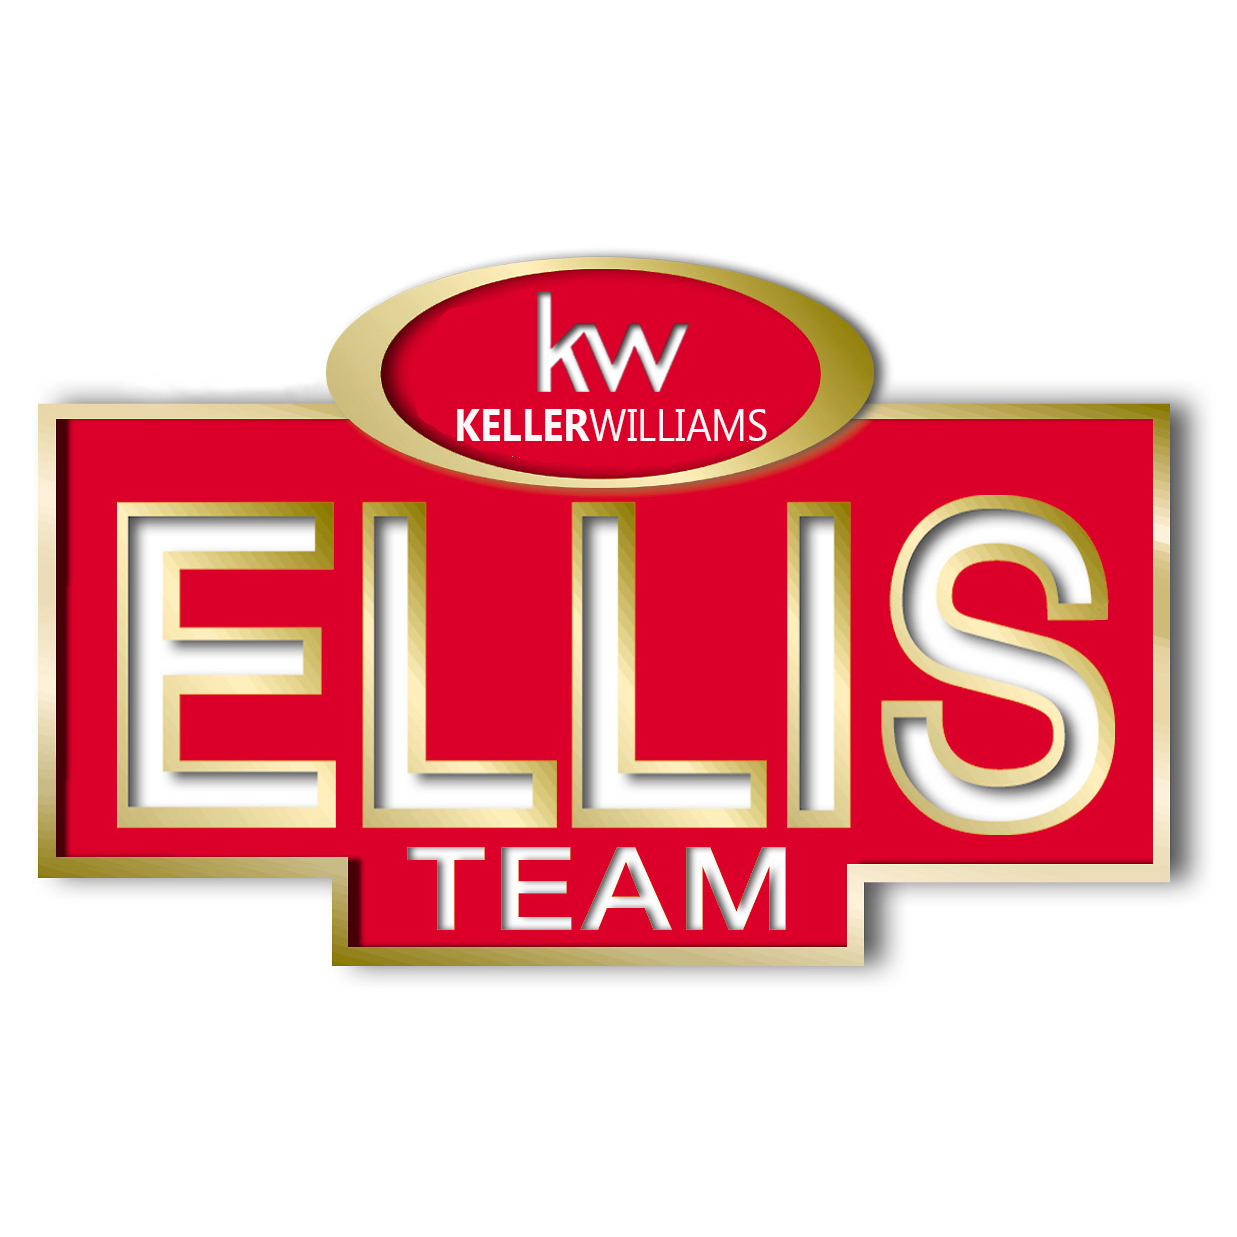 Ellis Team - Keller Williams Realty Fort Myers & The Islands